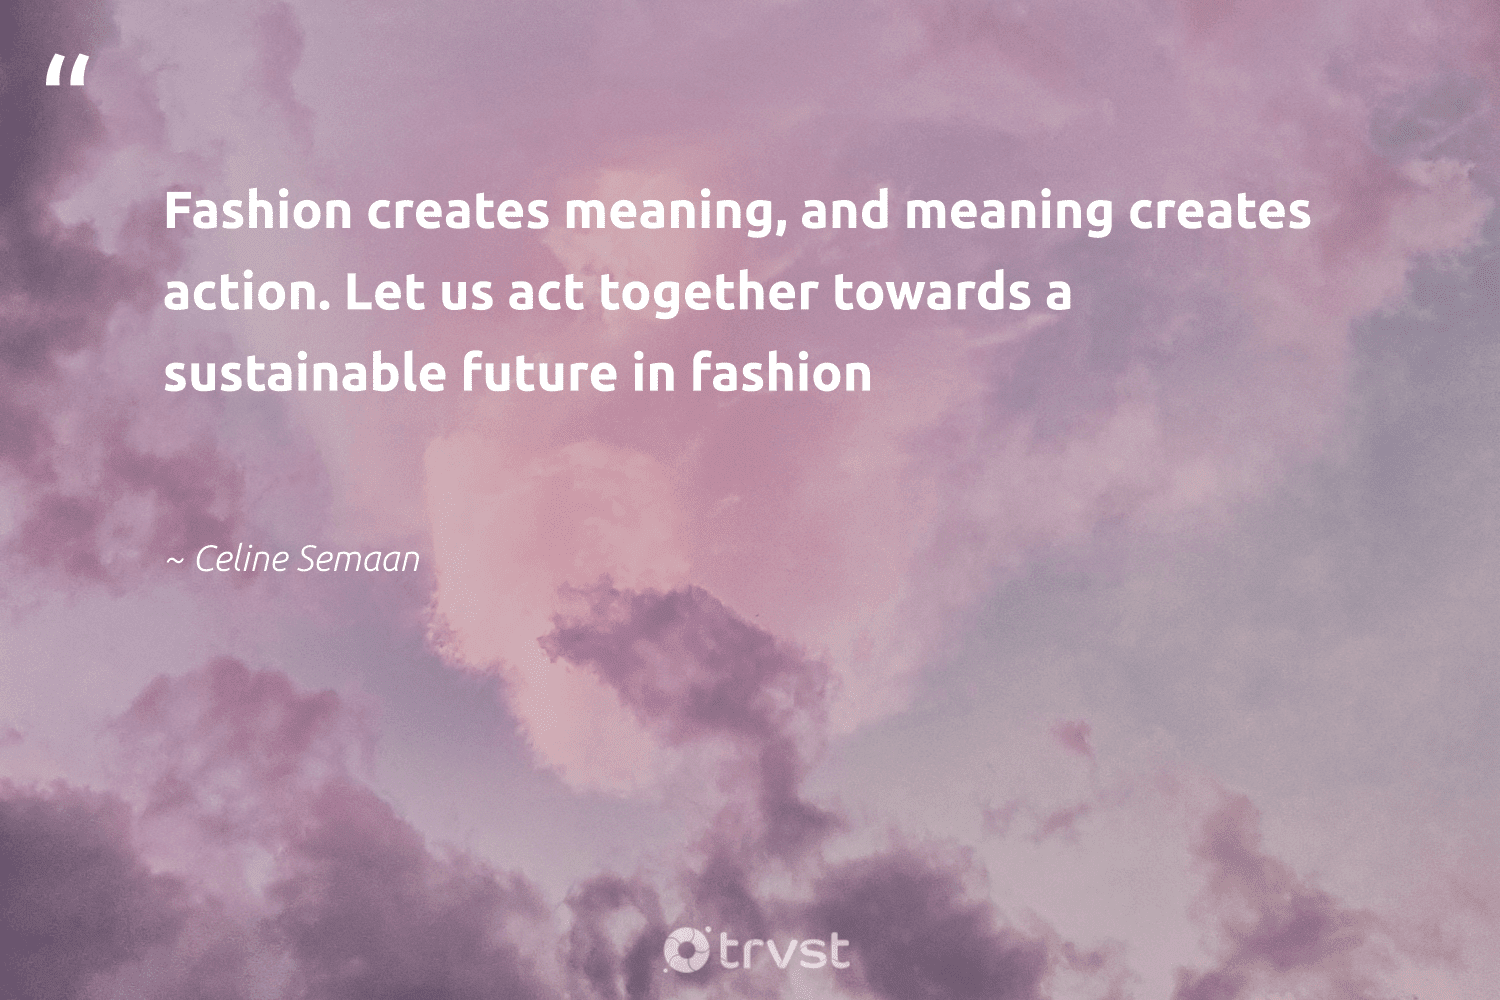 """""""Fashion creates meaning, and meaning creates action. Let us act together towards a sustainable future in fashion""""  - Celine Semaan #trvst #quotes #sustainability #sustainable #fashion #ecofriendly #greenliving #bethechange #dotherightthing #sustainableliving #green #gogreen"""